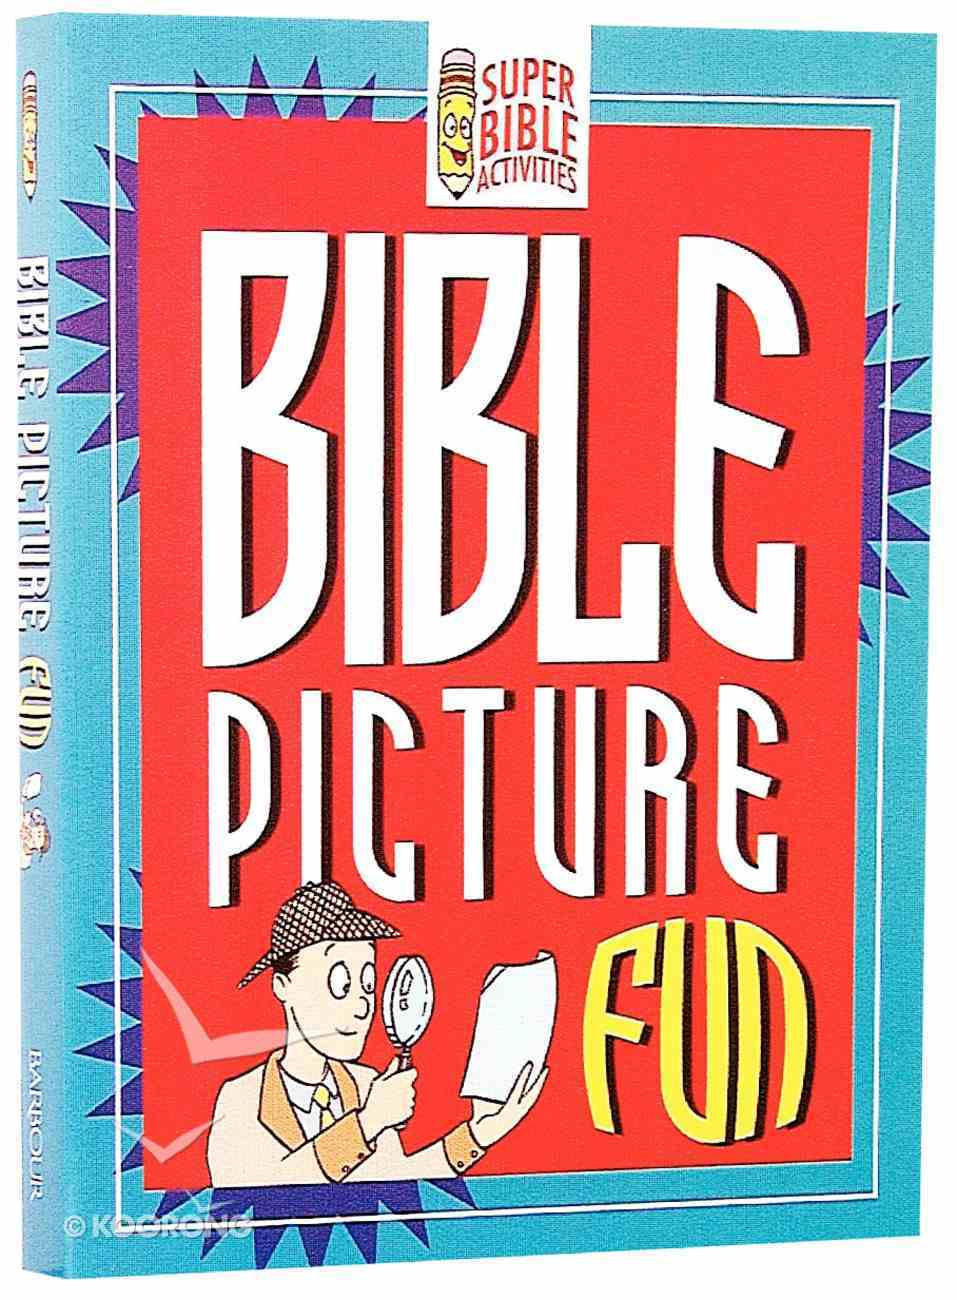 Bible Picture Fun (Super Bible Activities Series) Paperback